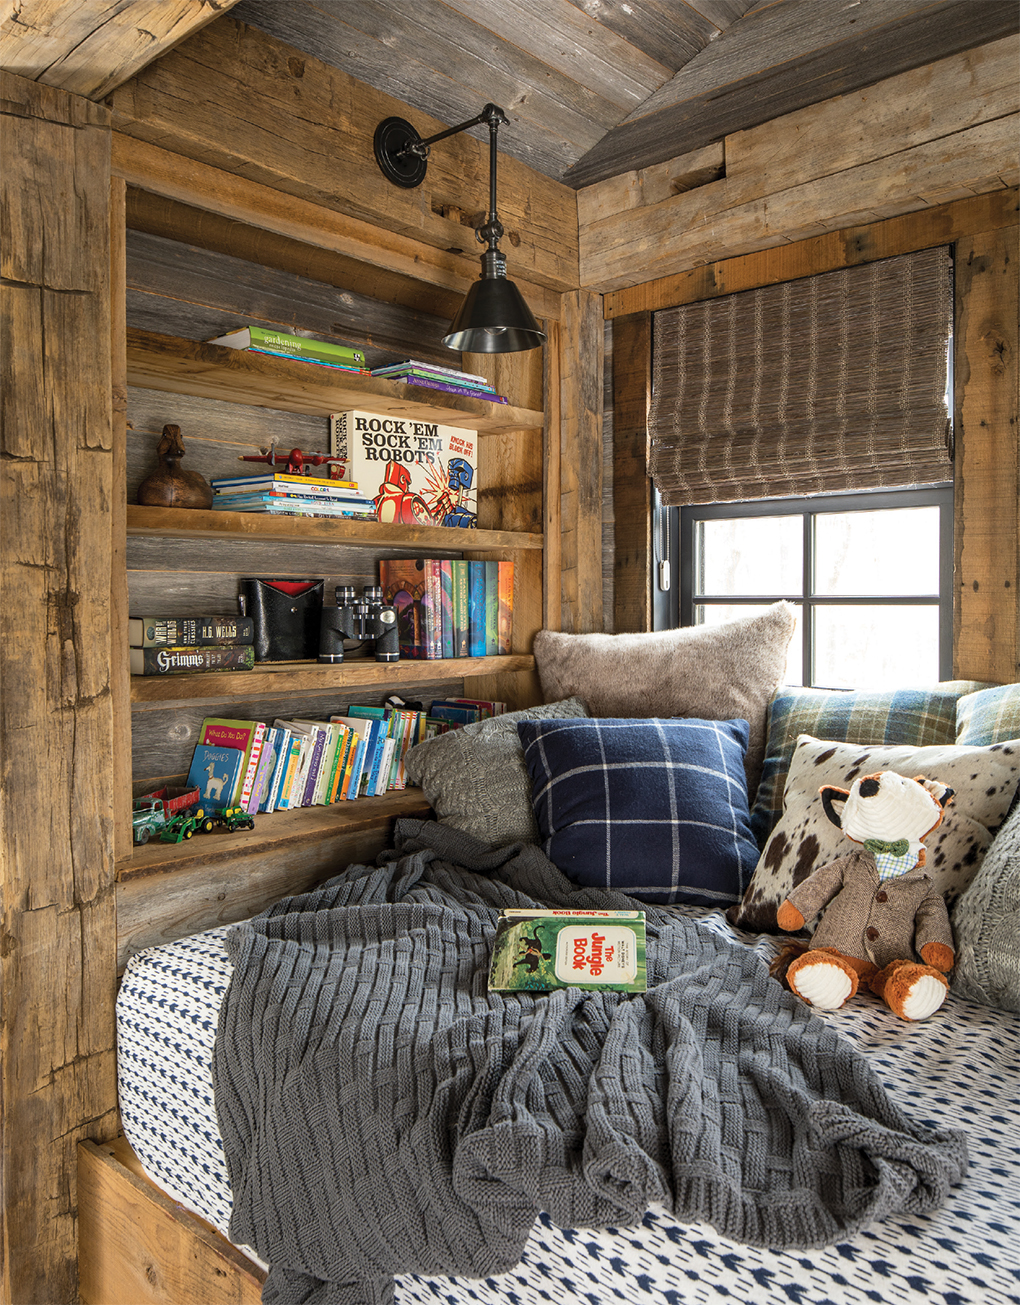 This nook is a snug hideaway for reading or napping.